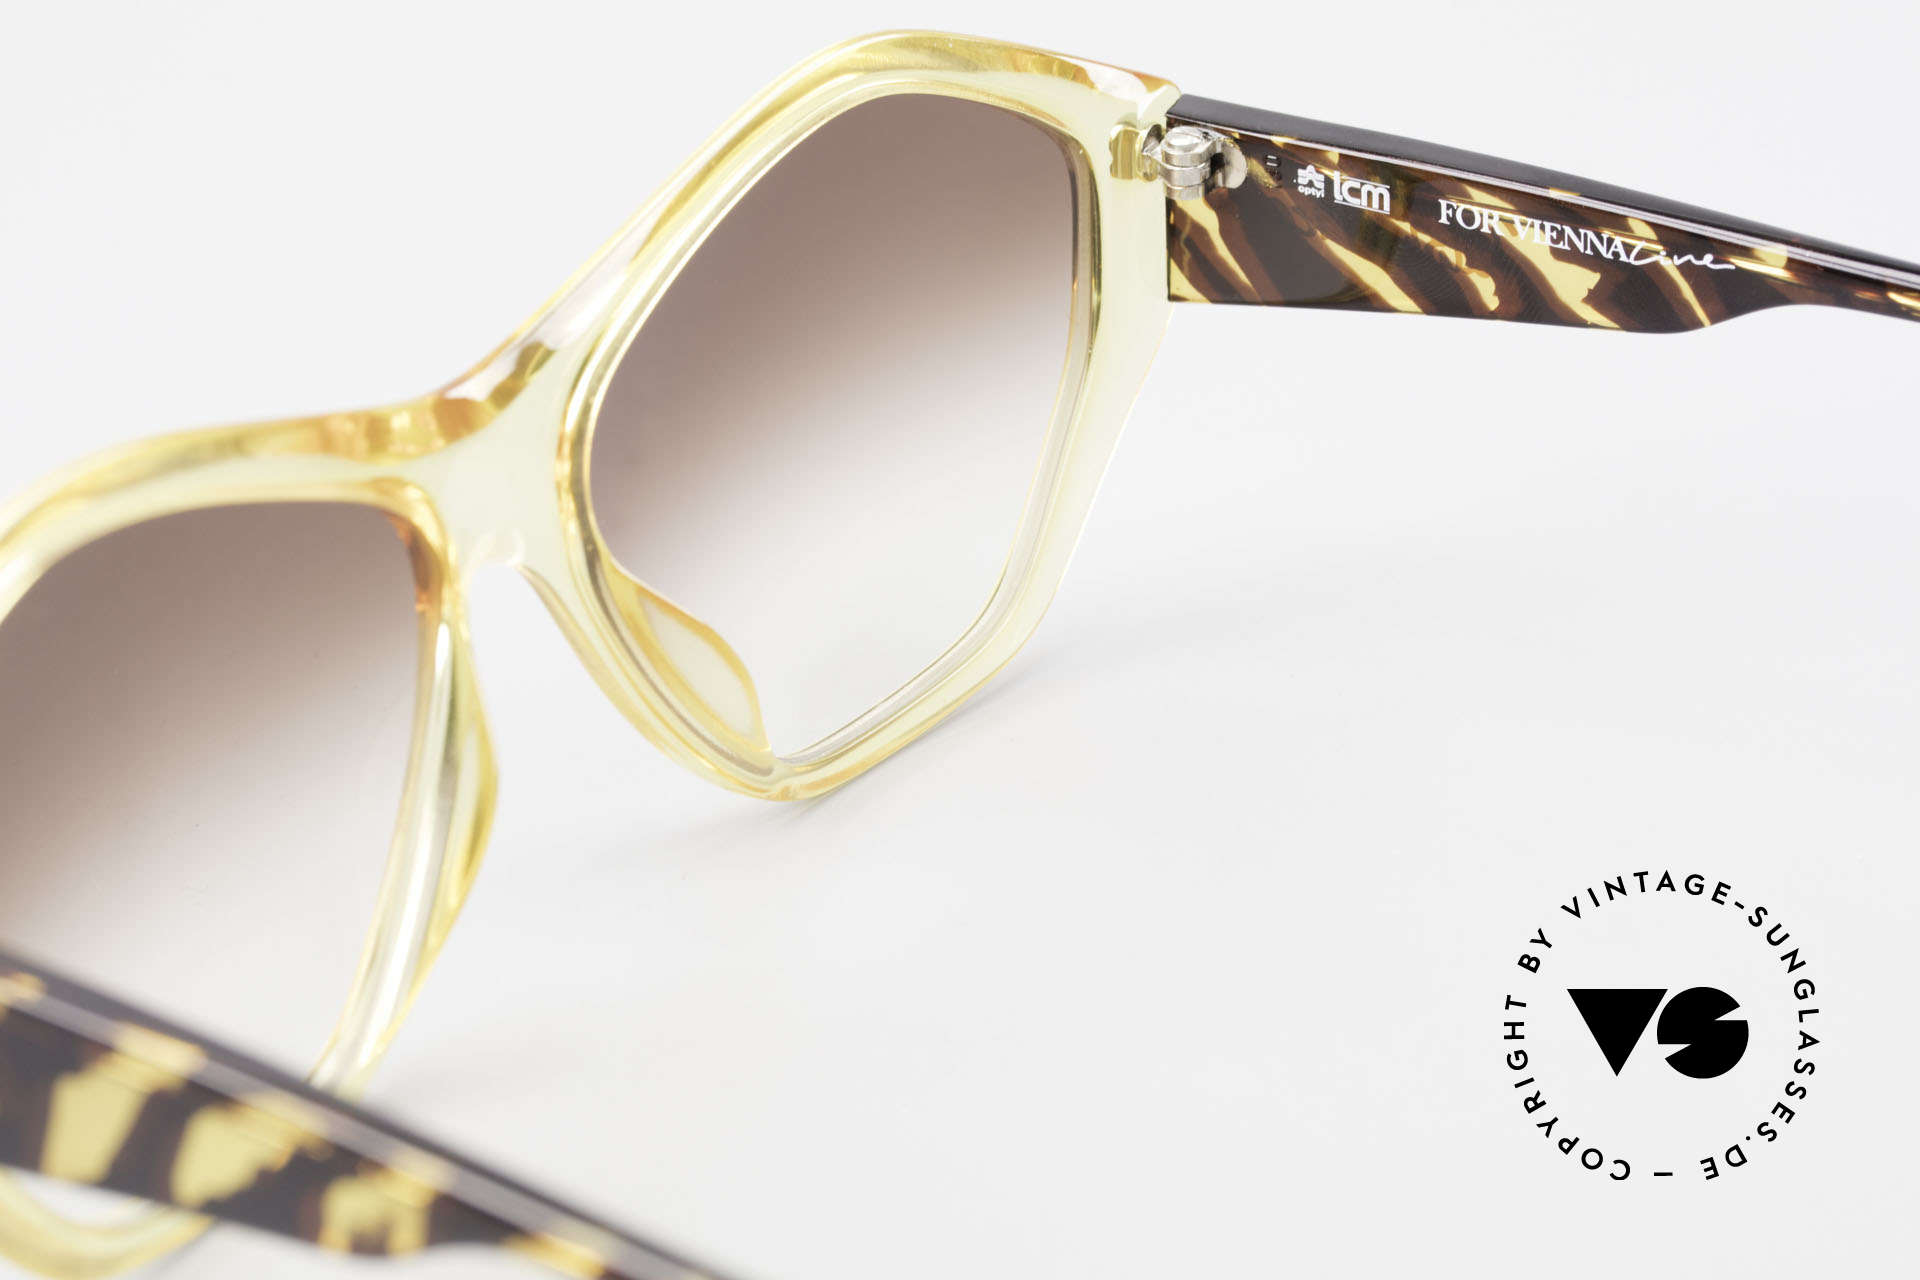 Paloma Picasso 1463 Optyl Sunglasses 90's Ladies, NO RETRO style shades! but a proud original one!, Made for Women